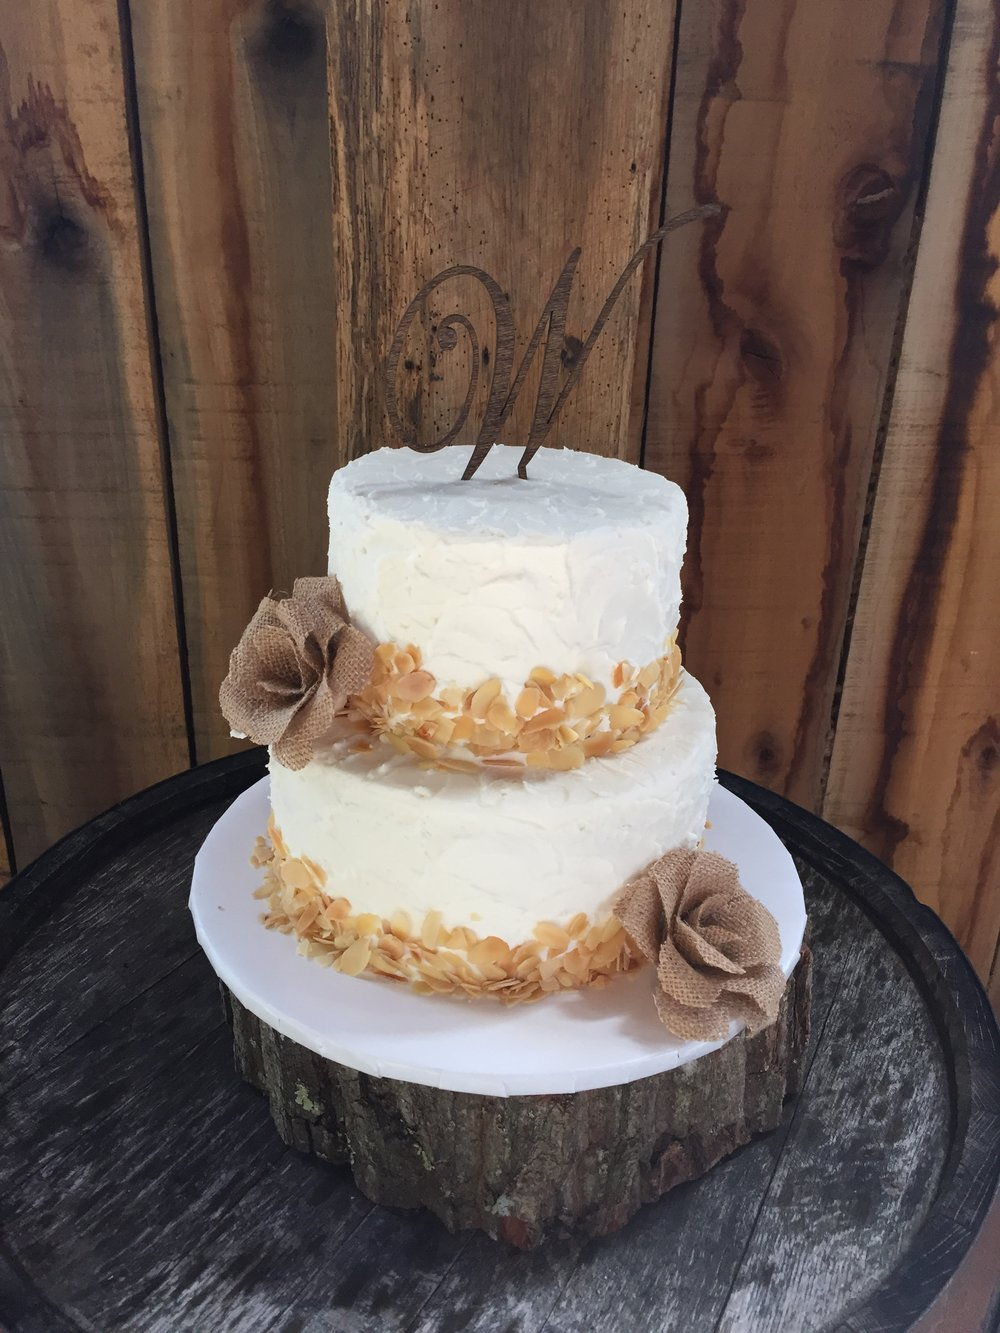 This cake was super delicious!